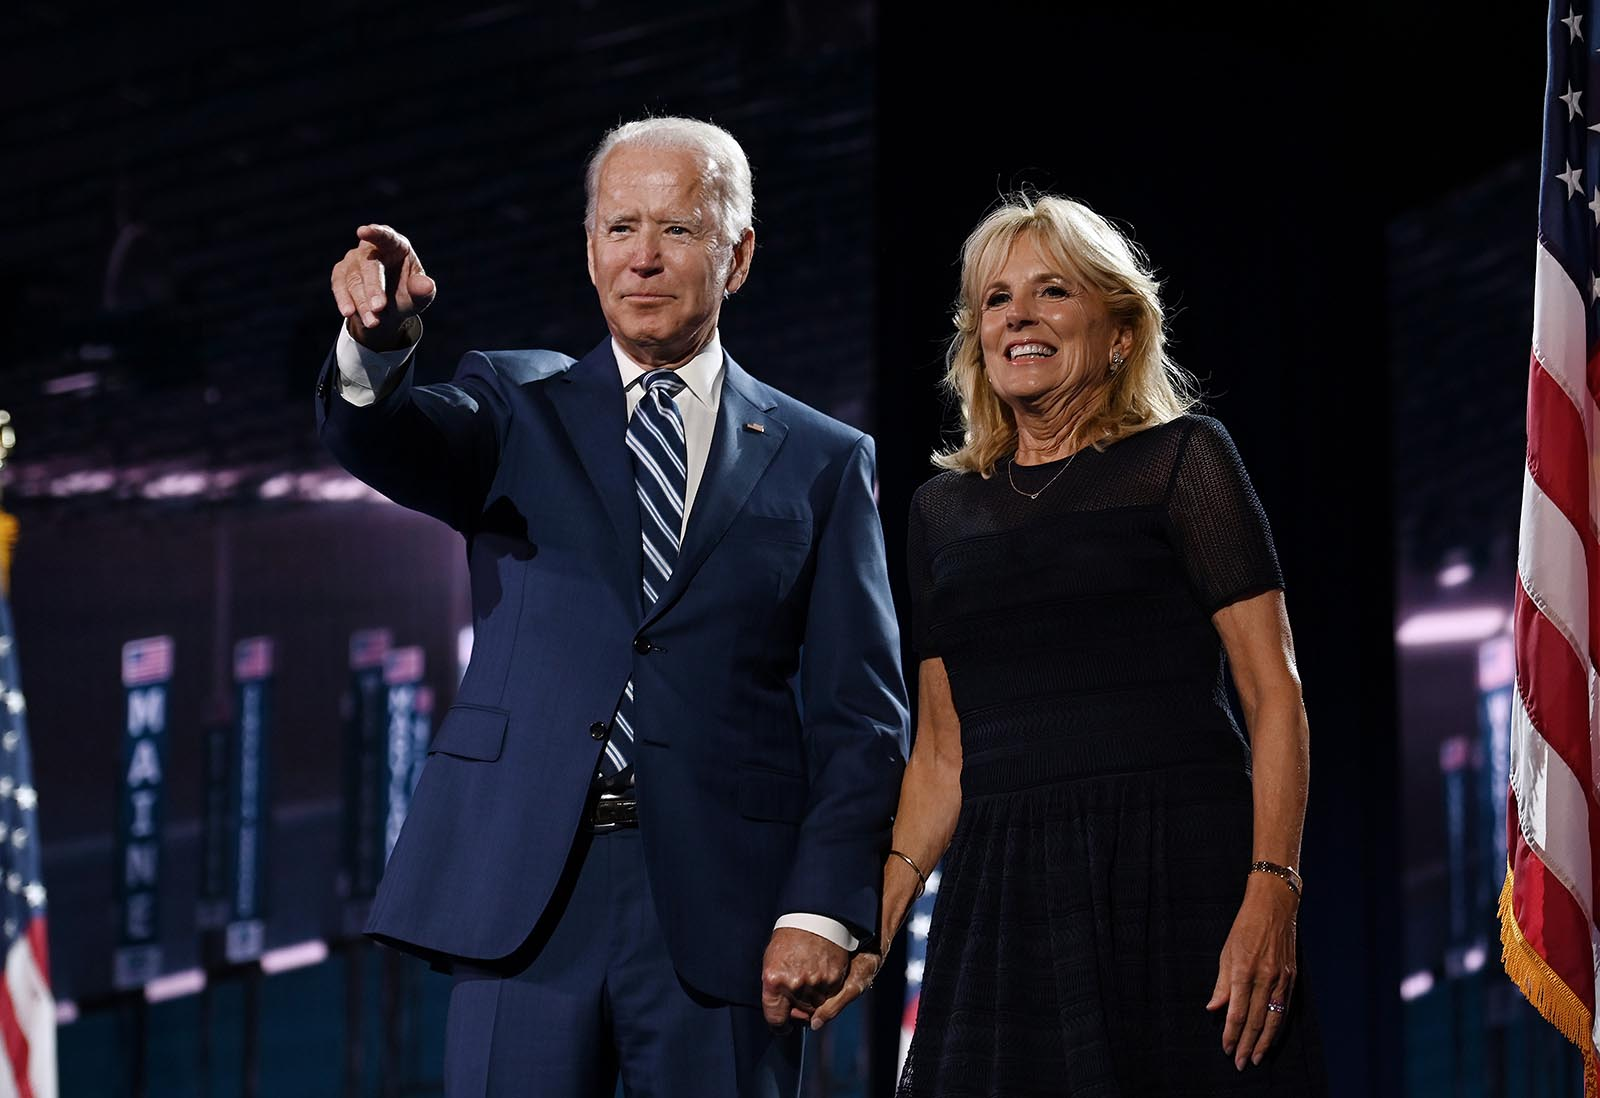 Former Vice President Joe Biden and former Second Lady Jill Biden stand on stage at the end of the third day of the Democratic National Convention at the Chase Center in Wilmington, Delaware on August 19.